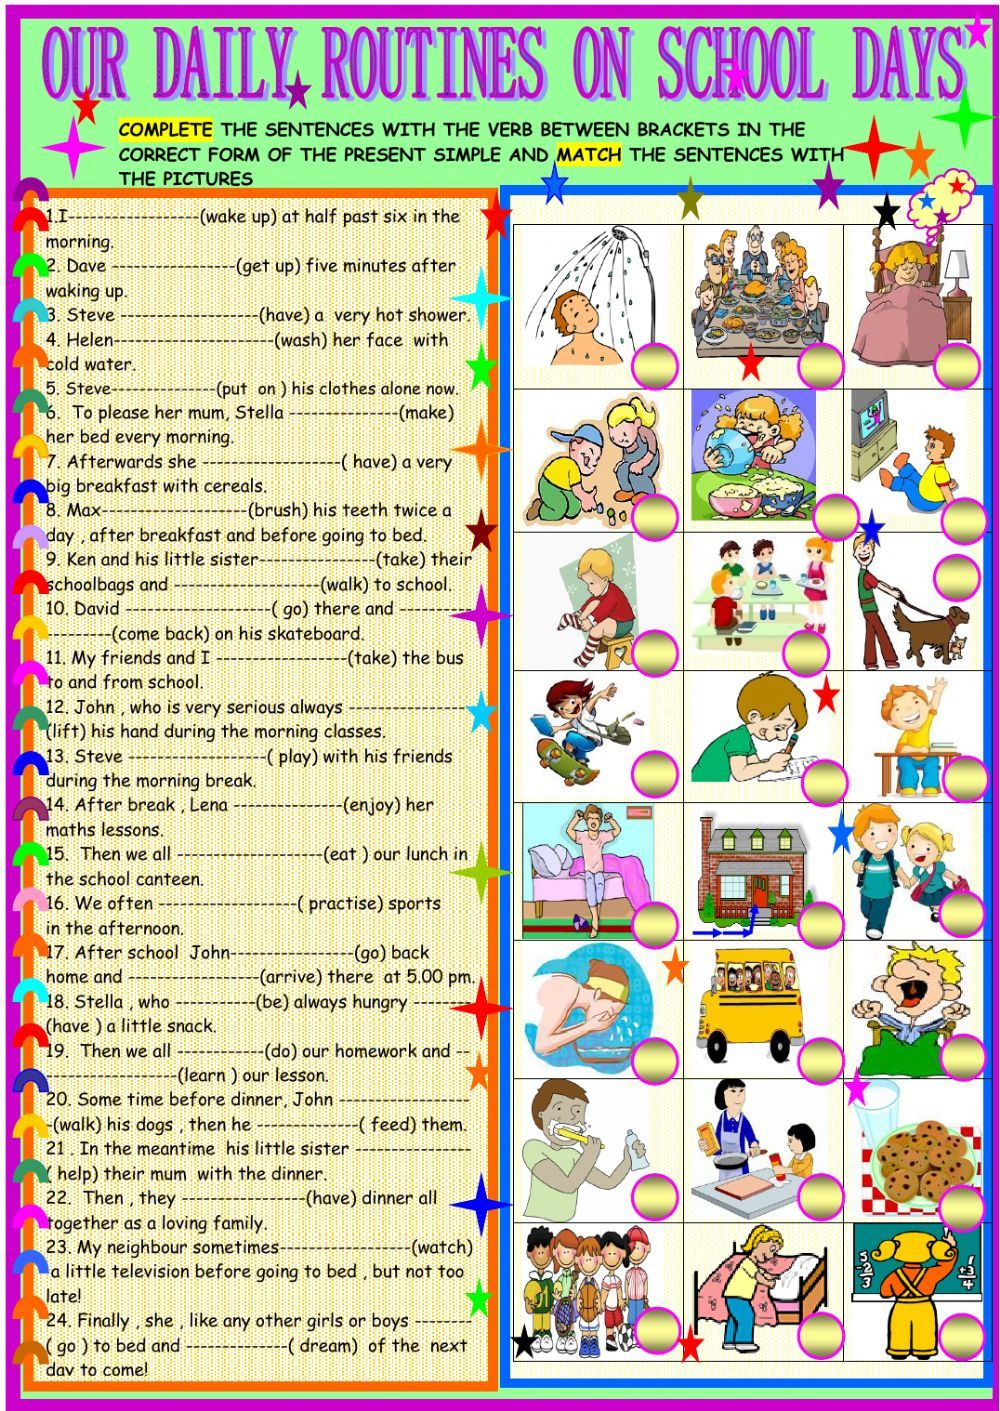 Daily Routines Interactive And Downloadable Worksheet You Can Do The Exercises Online Or Download Regular And Irregular Verbs Irregular Verbs Verb Worksheets